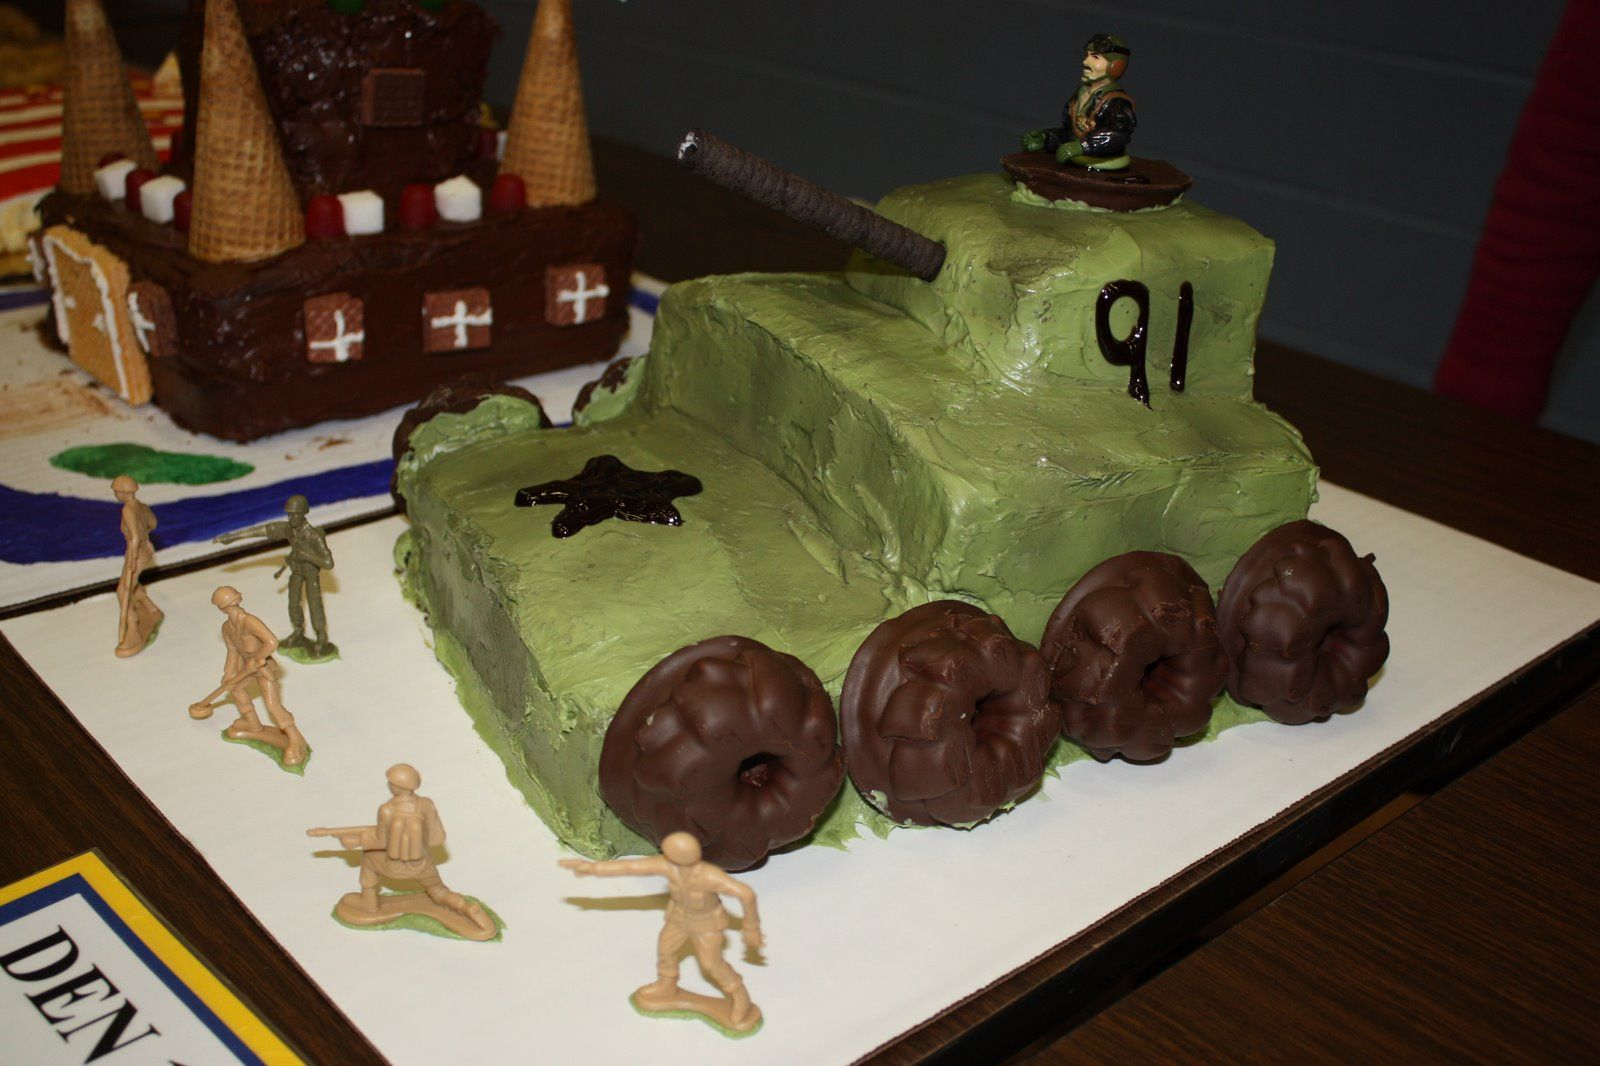 cub scout cake bake | Cub Scout Cake Bake and Home and Family Friday